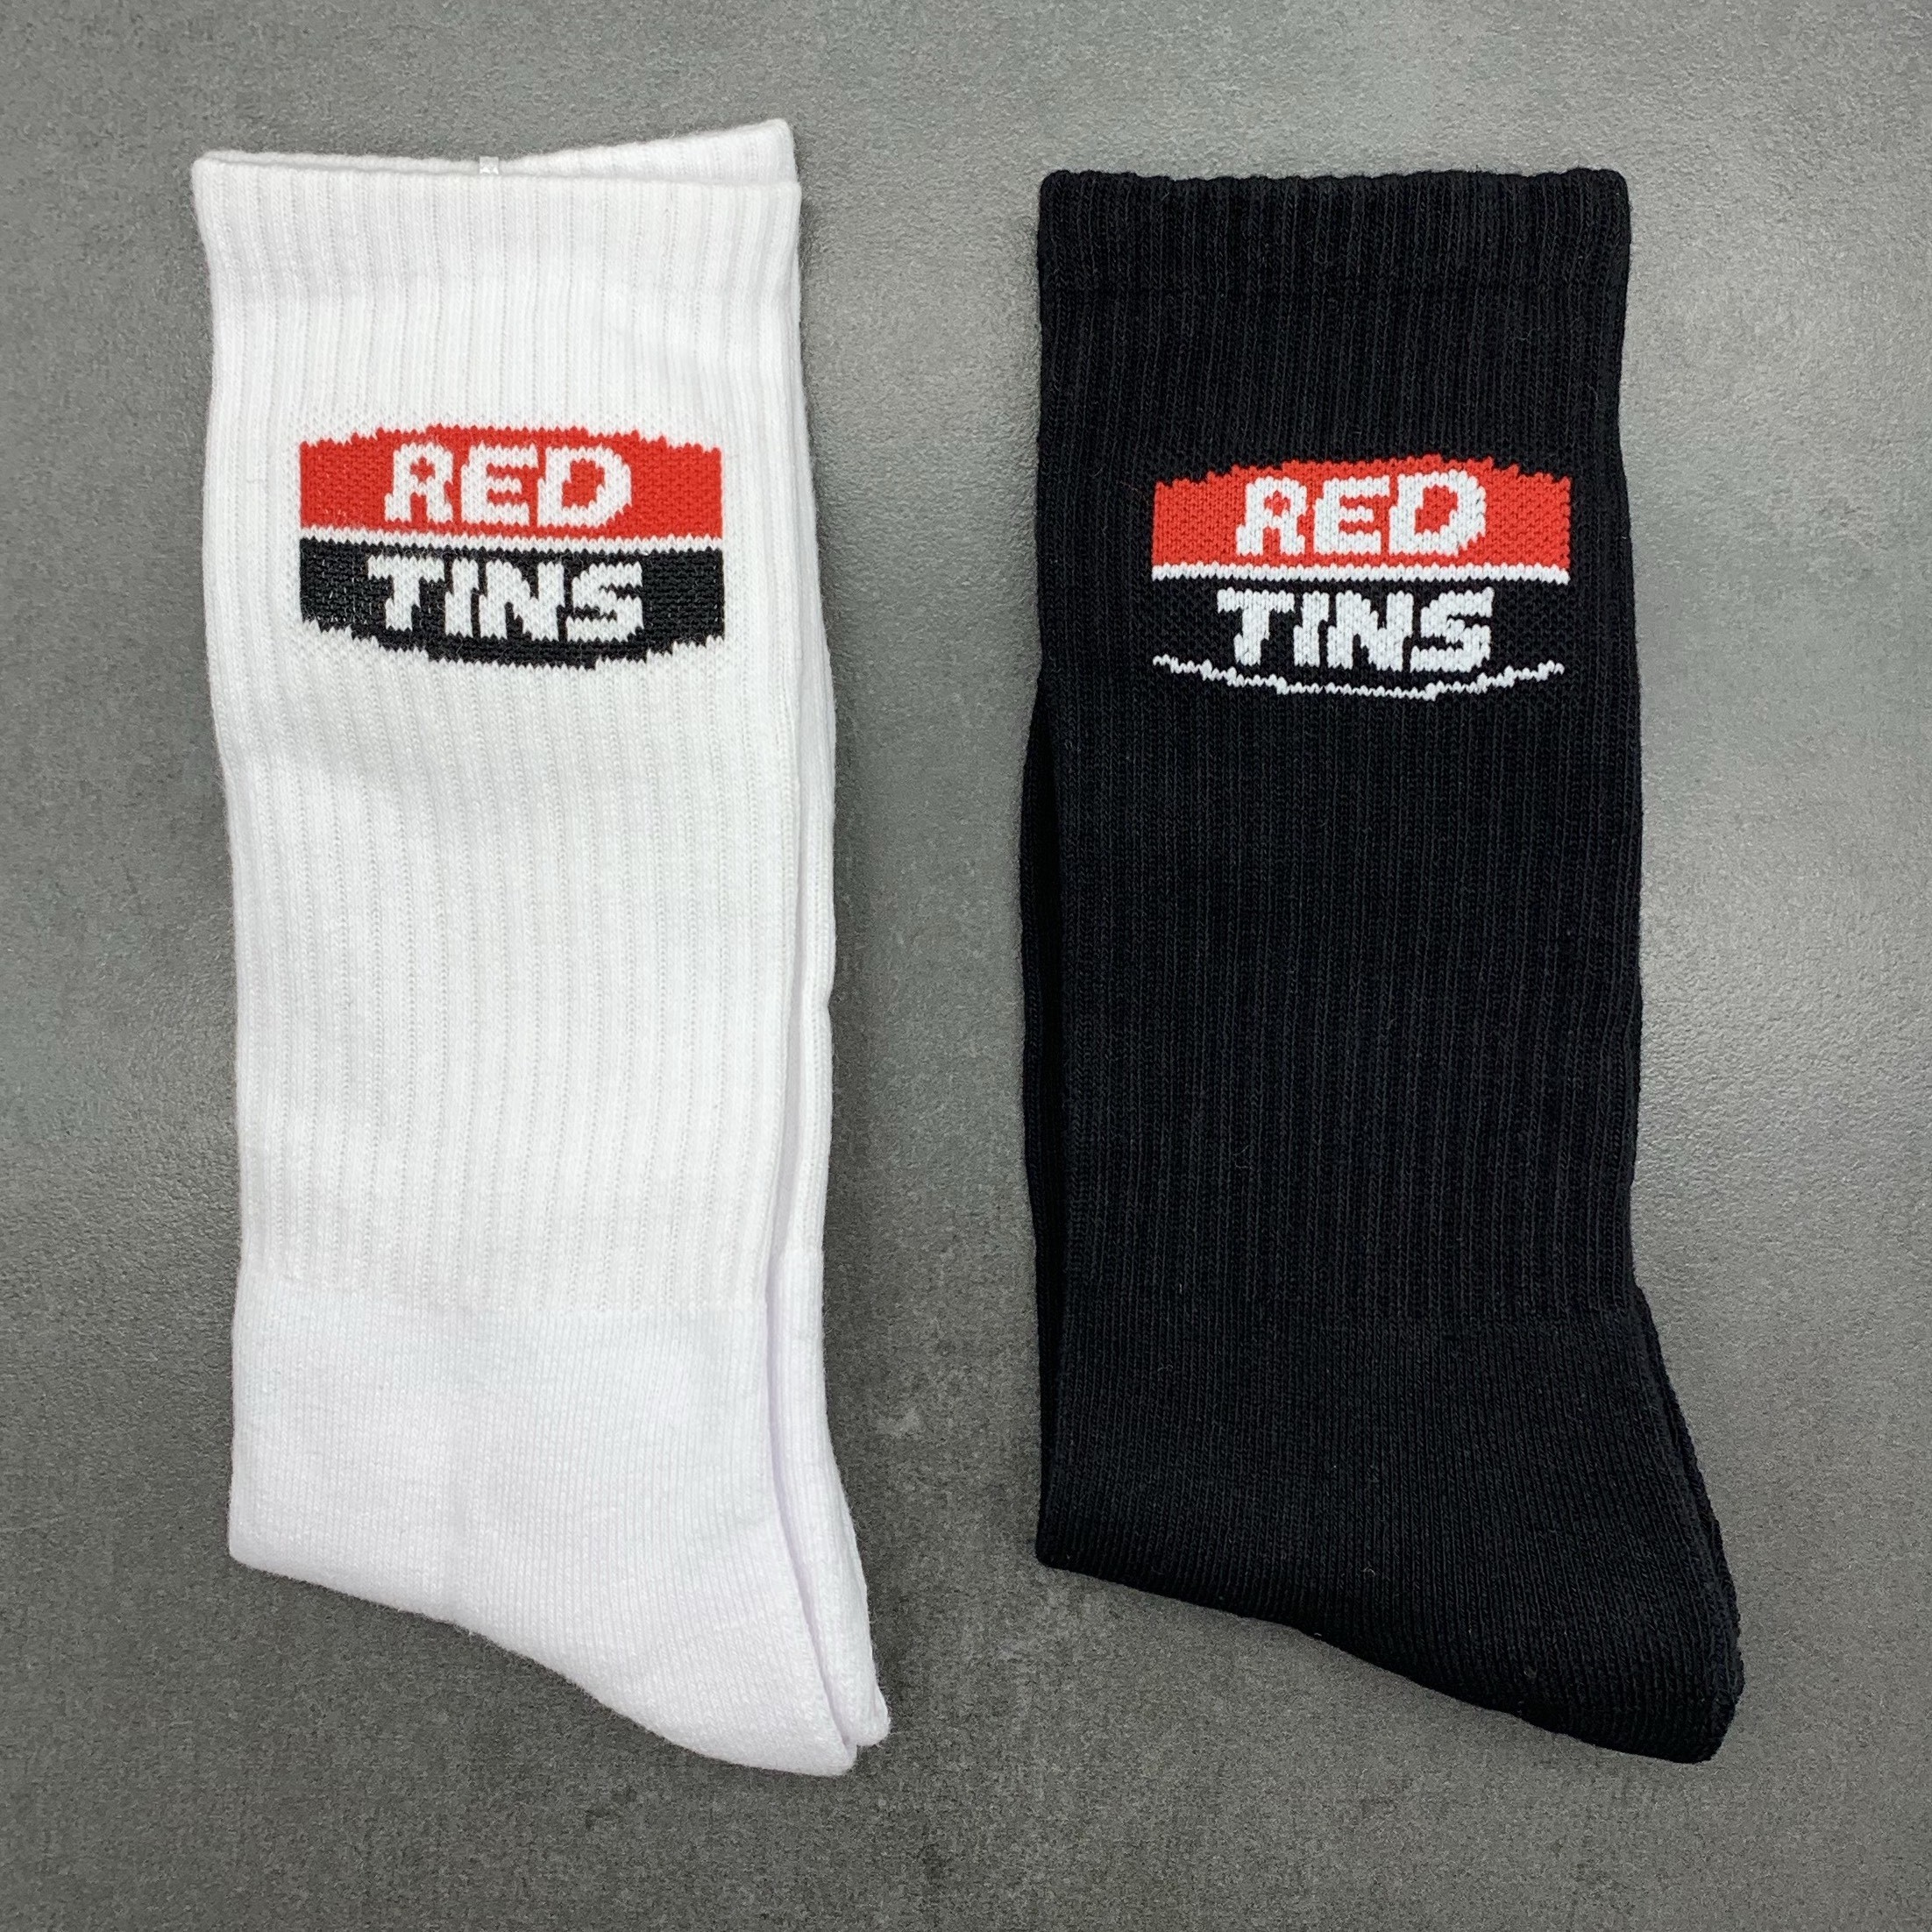 2 PACK OF RED TINS SOCKS